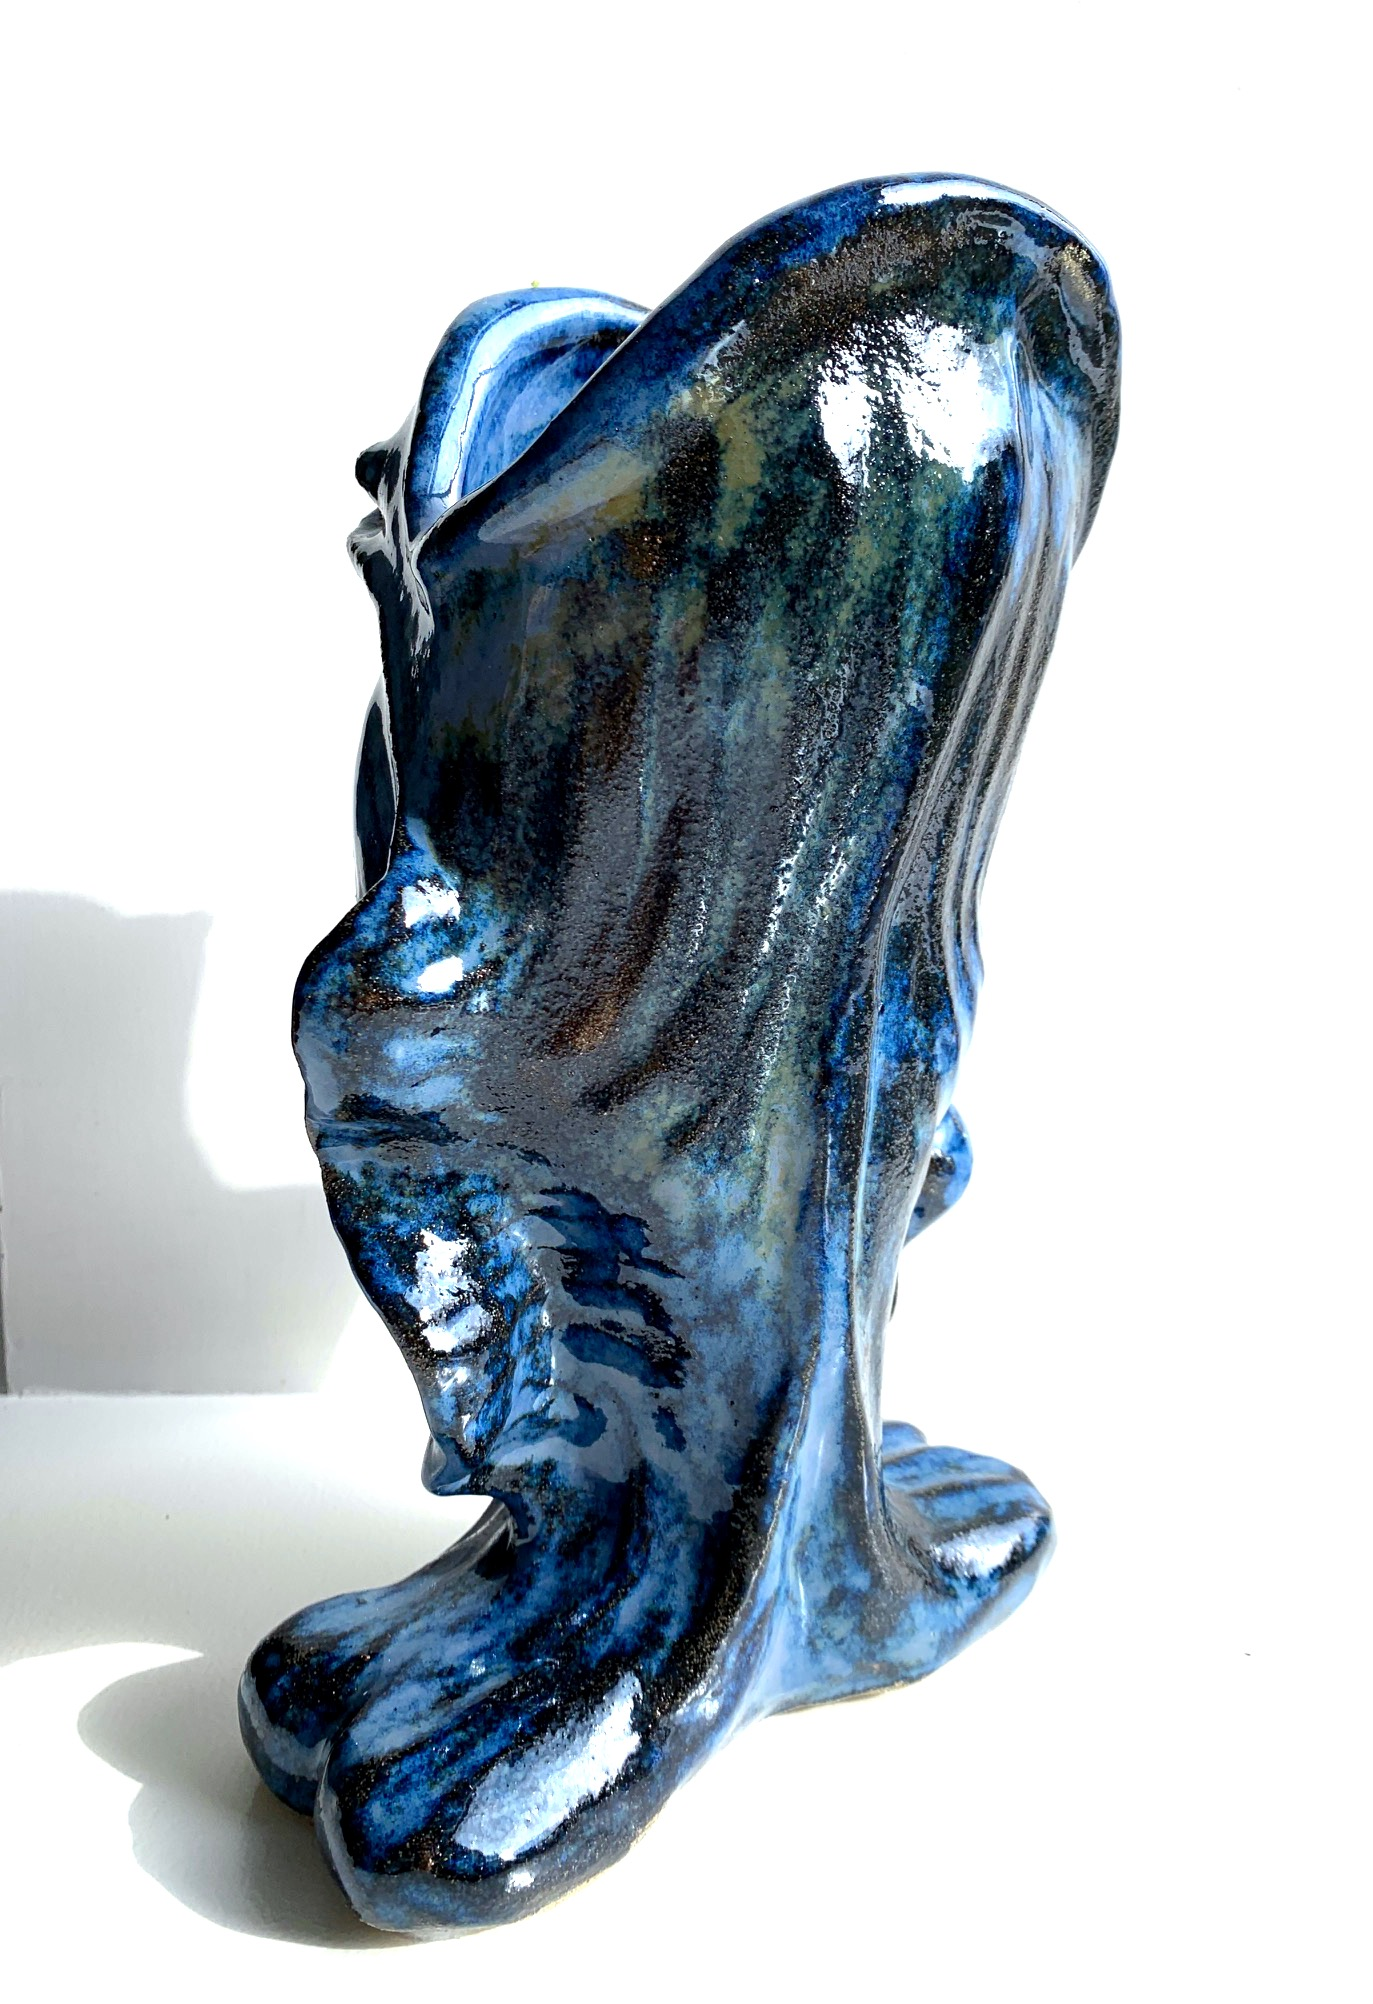 Blue fish BIG mouth - SOLD